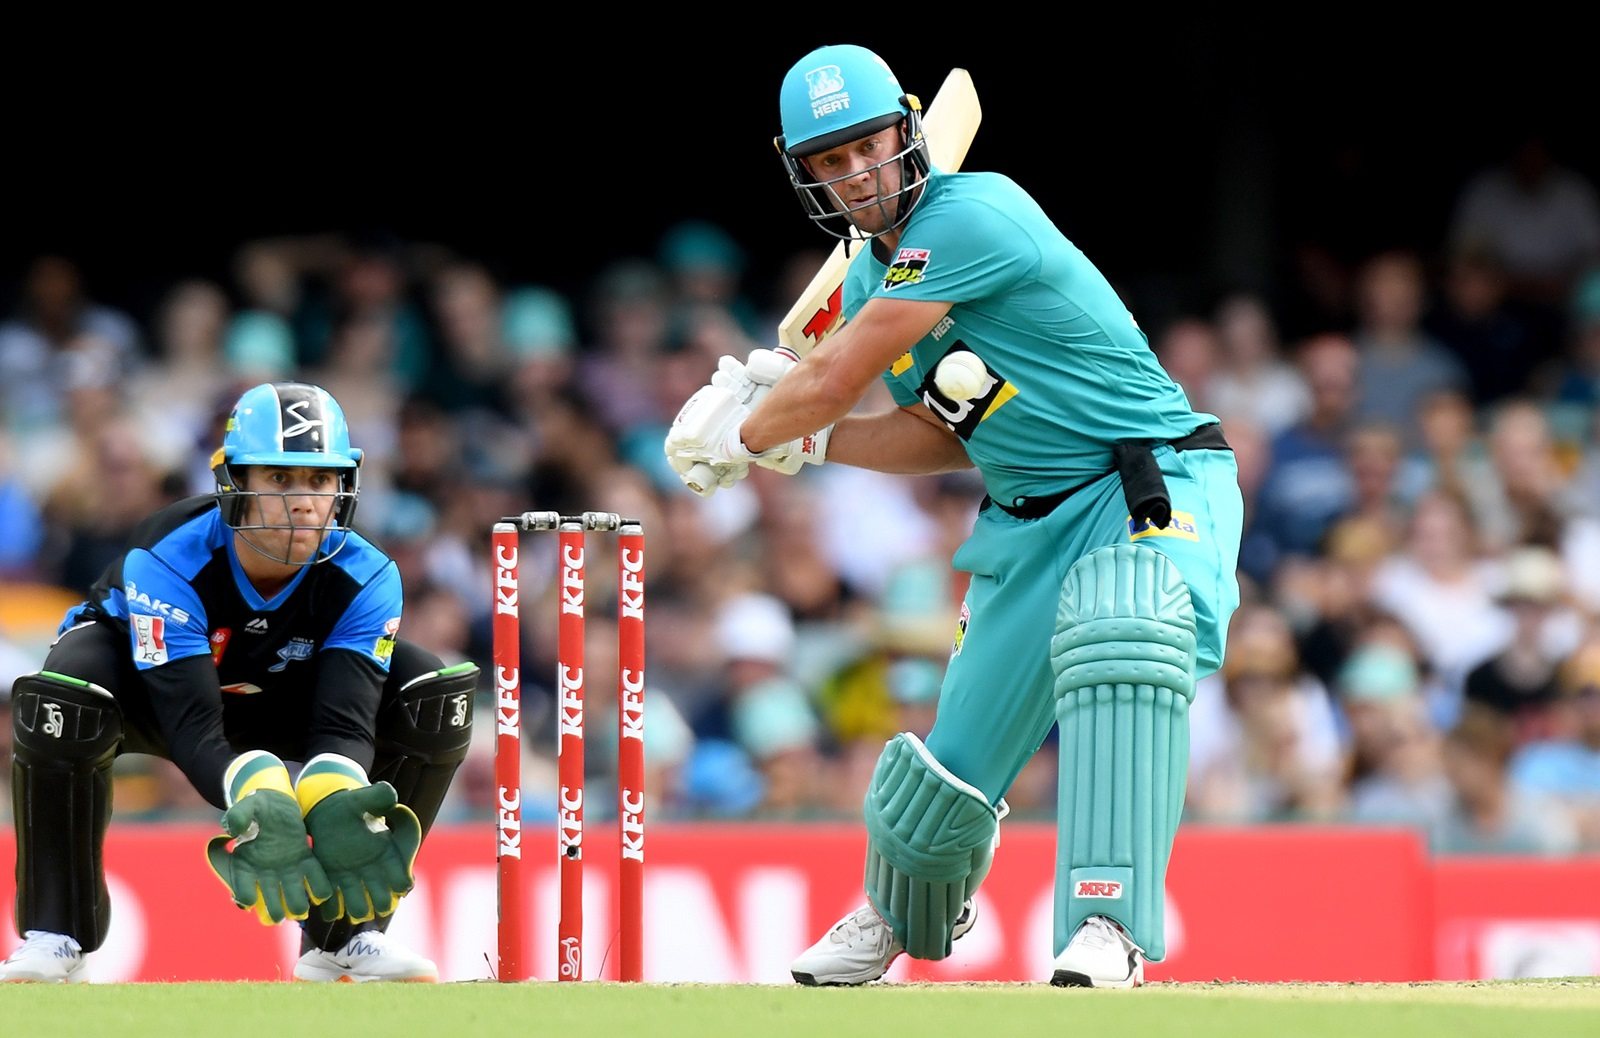 'I'd love to': De Villiers aiming for T20 World Cup return